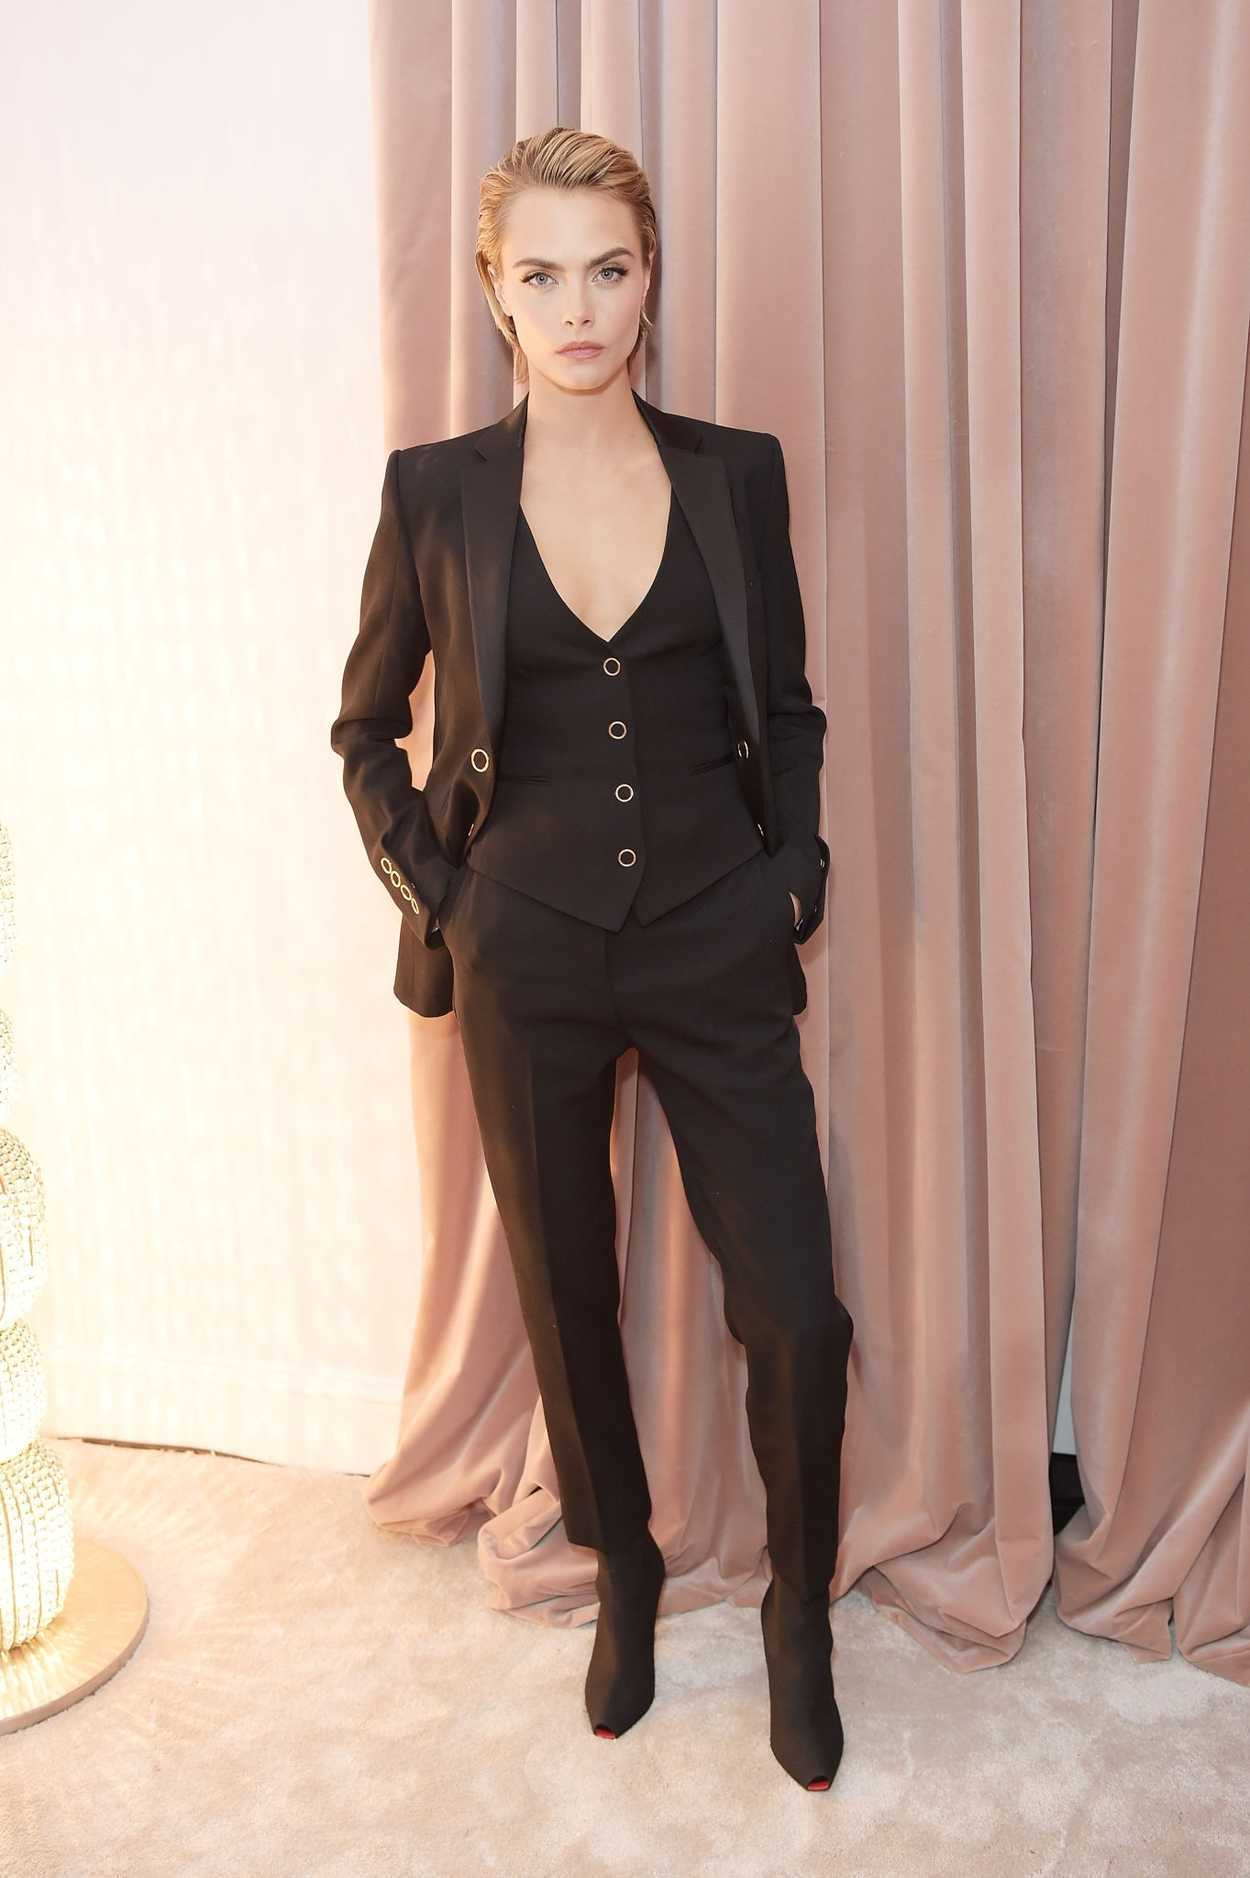 Cara Delevingne Attends the Launch of a New Burberry ...